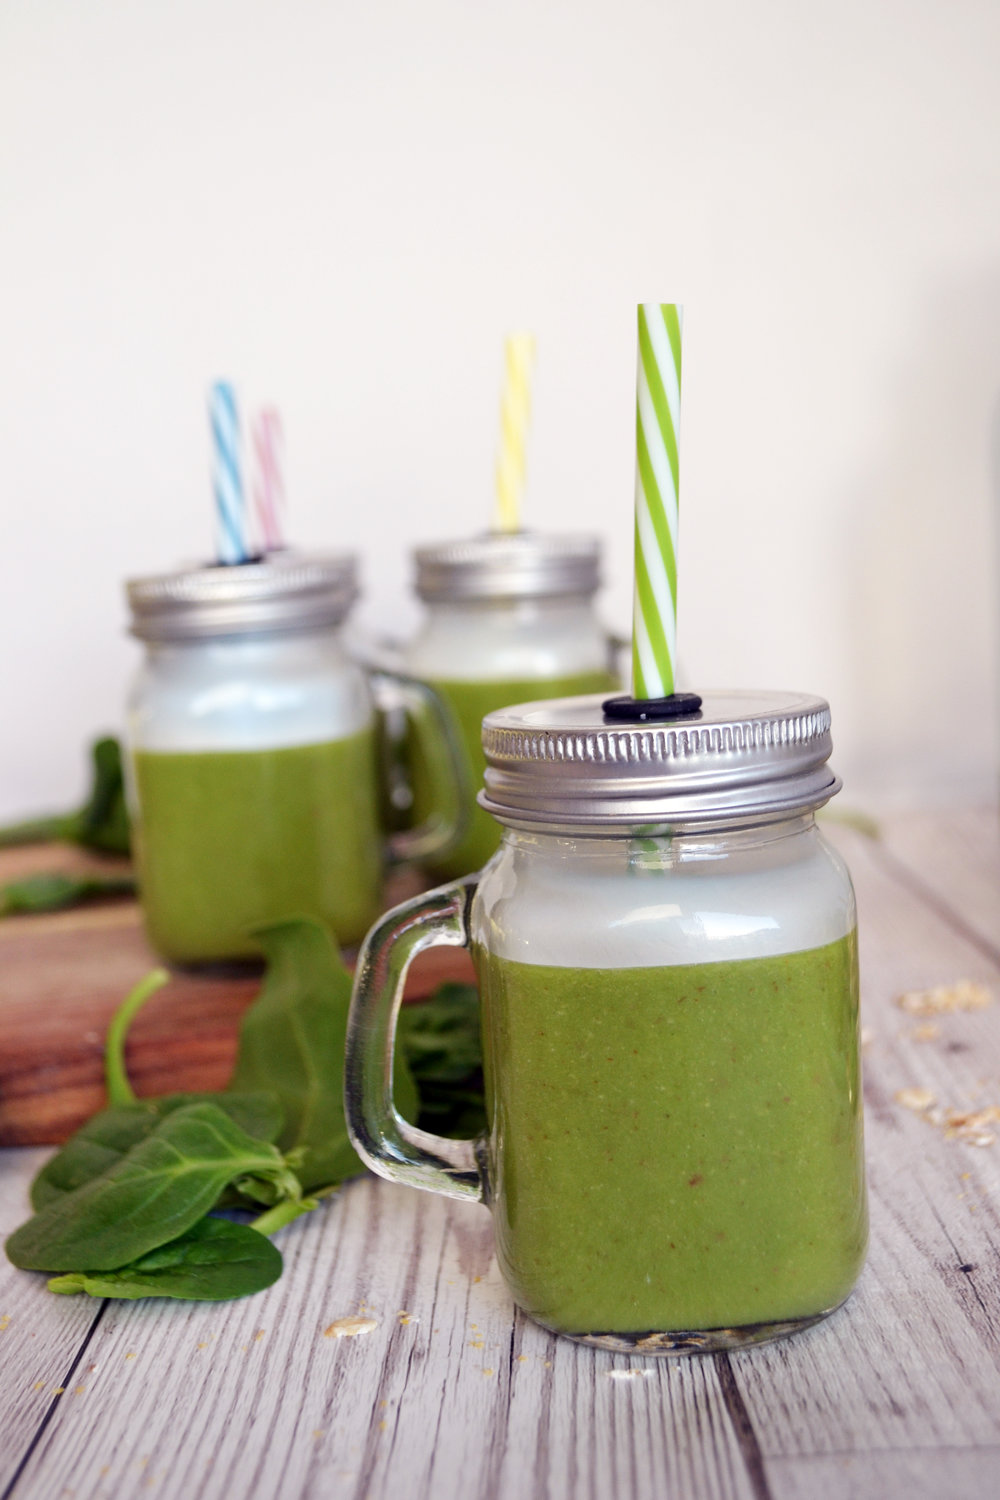 Apple pear and wheatgrass smoothie | The Flourishing Pantry